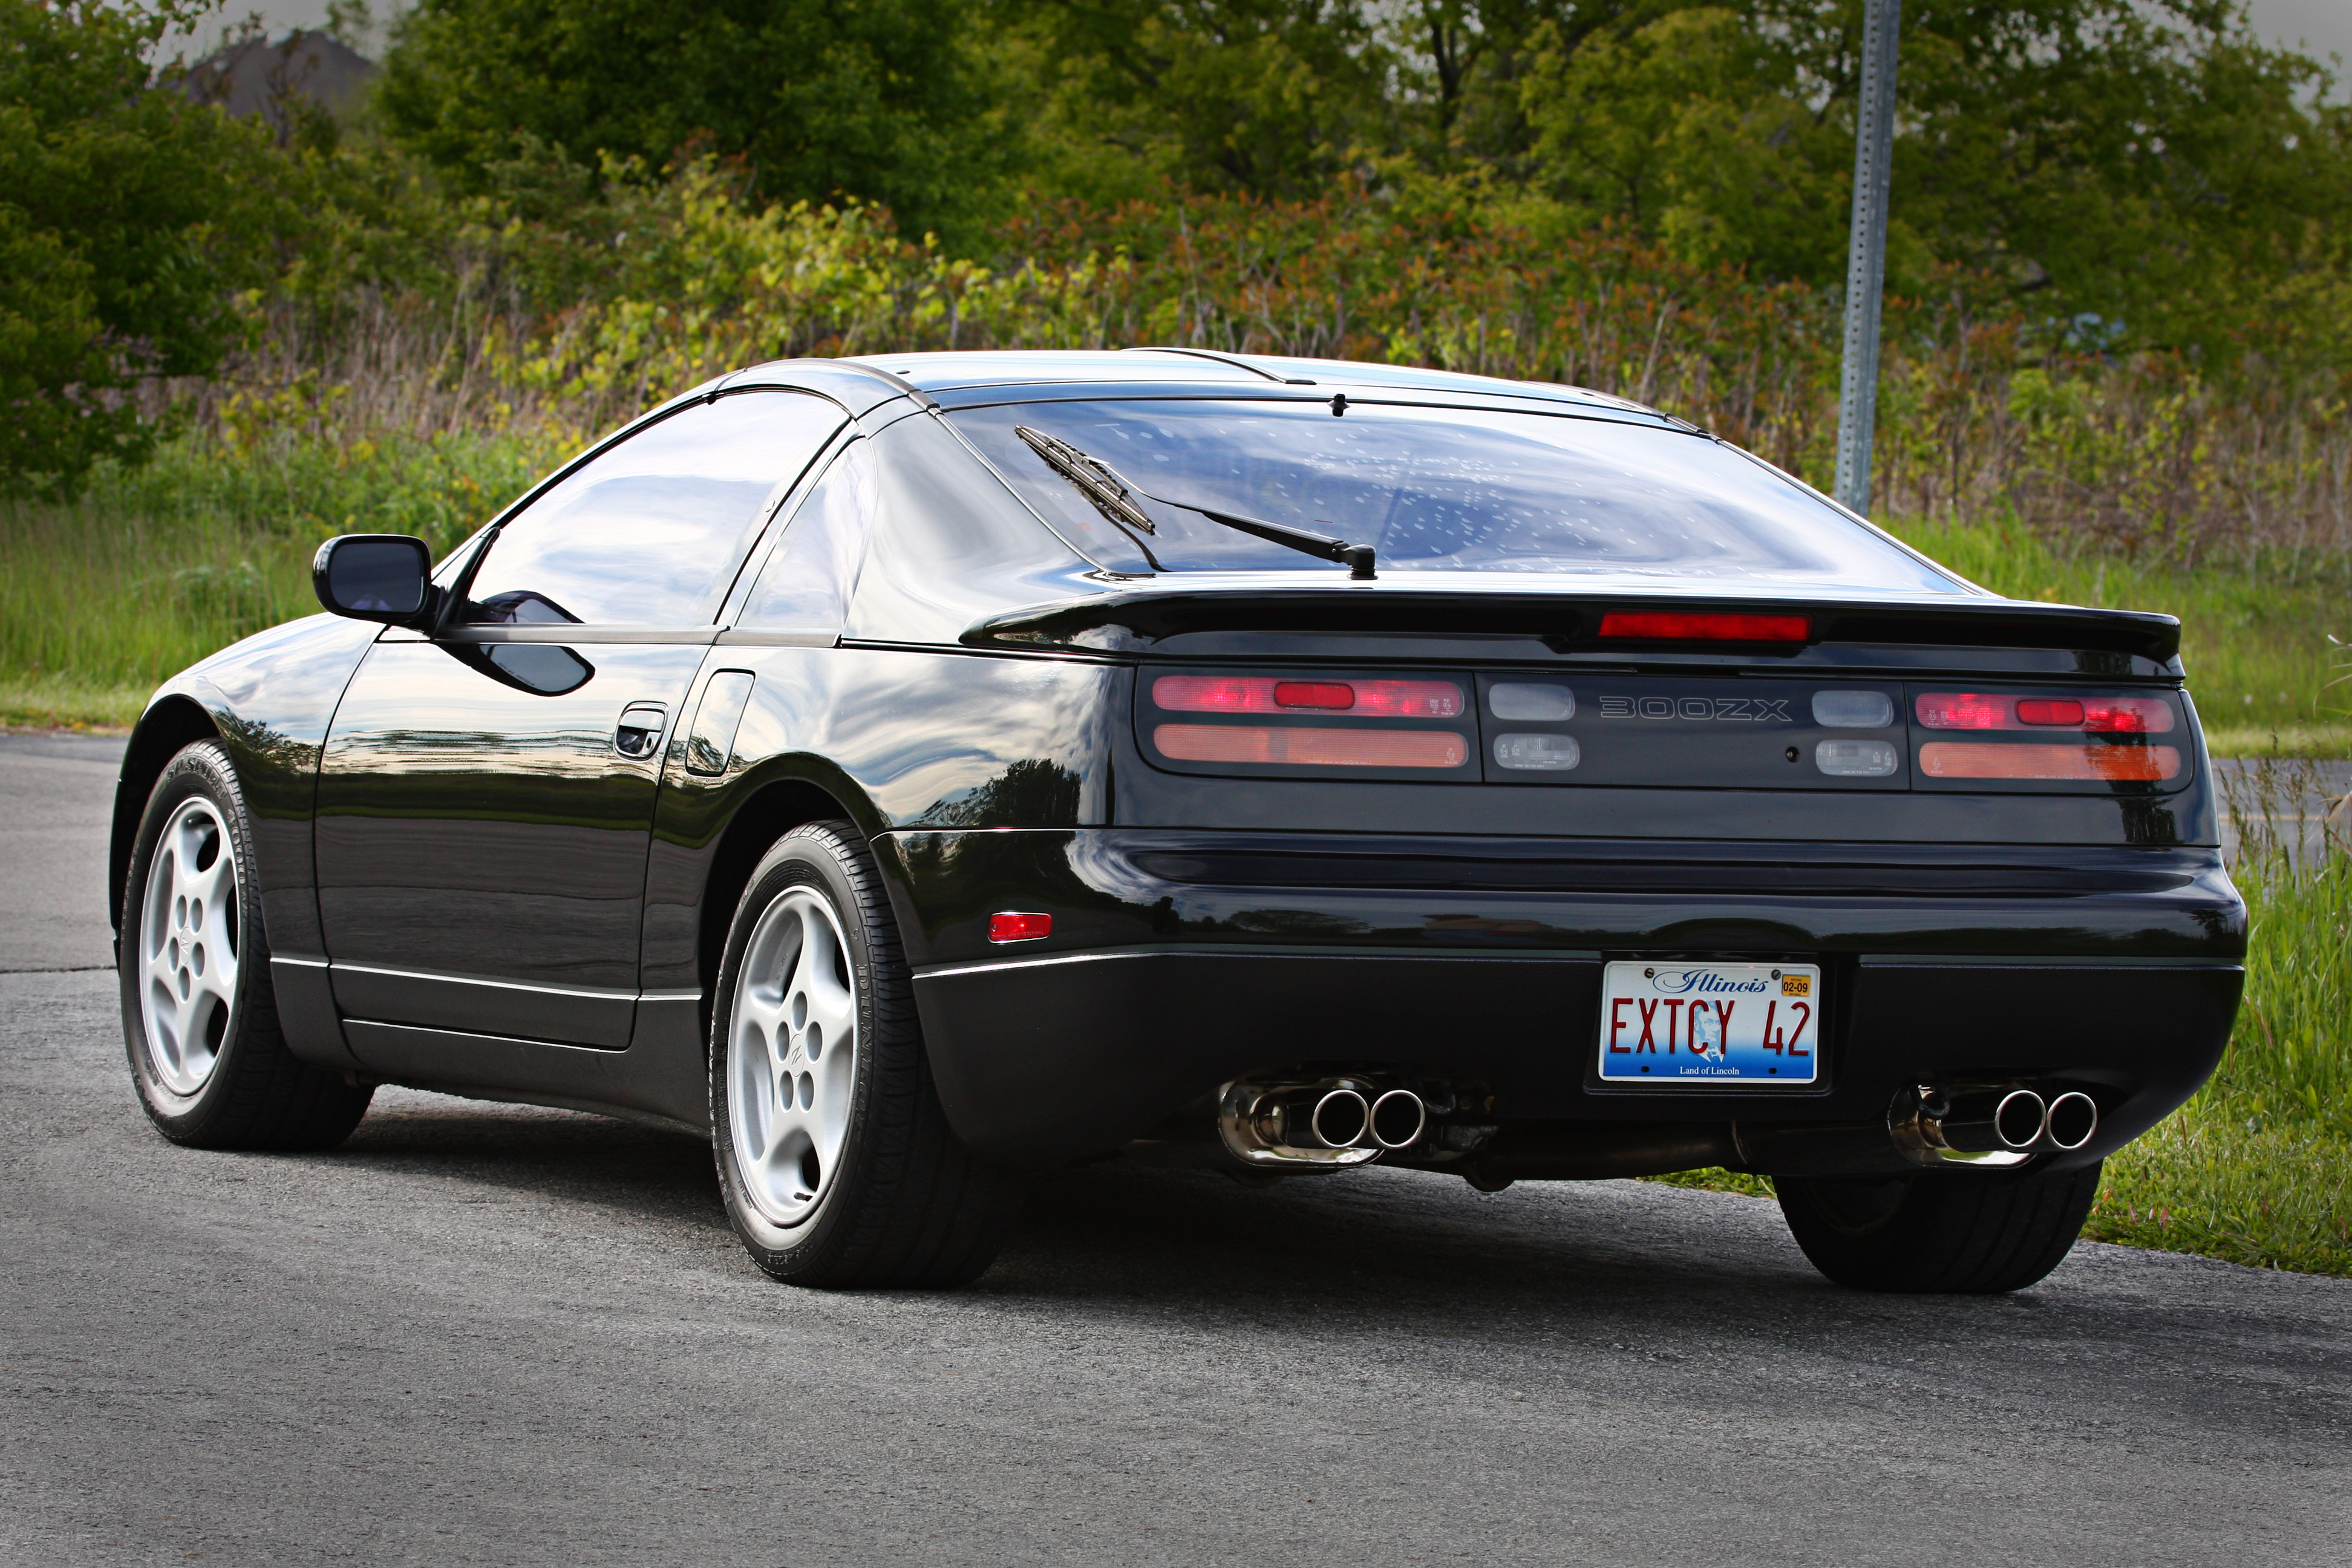 nissan 300zx twin turbo for sale 2013 autos post. Black Bedroom Furniture Sets. Home Design Ideas